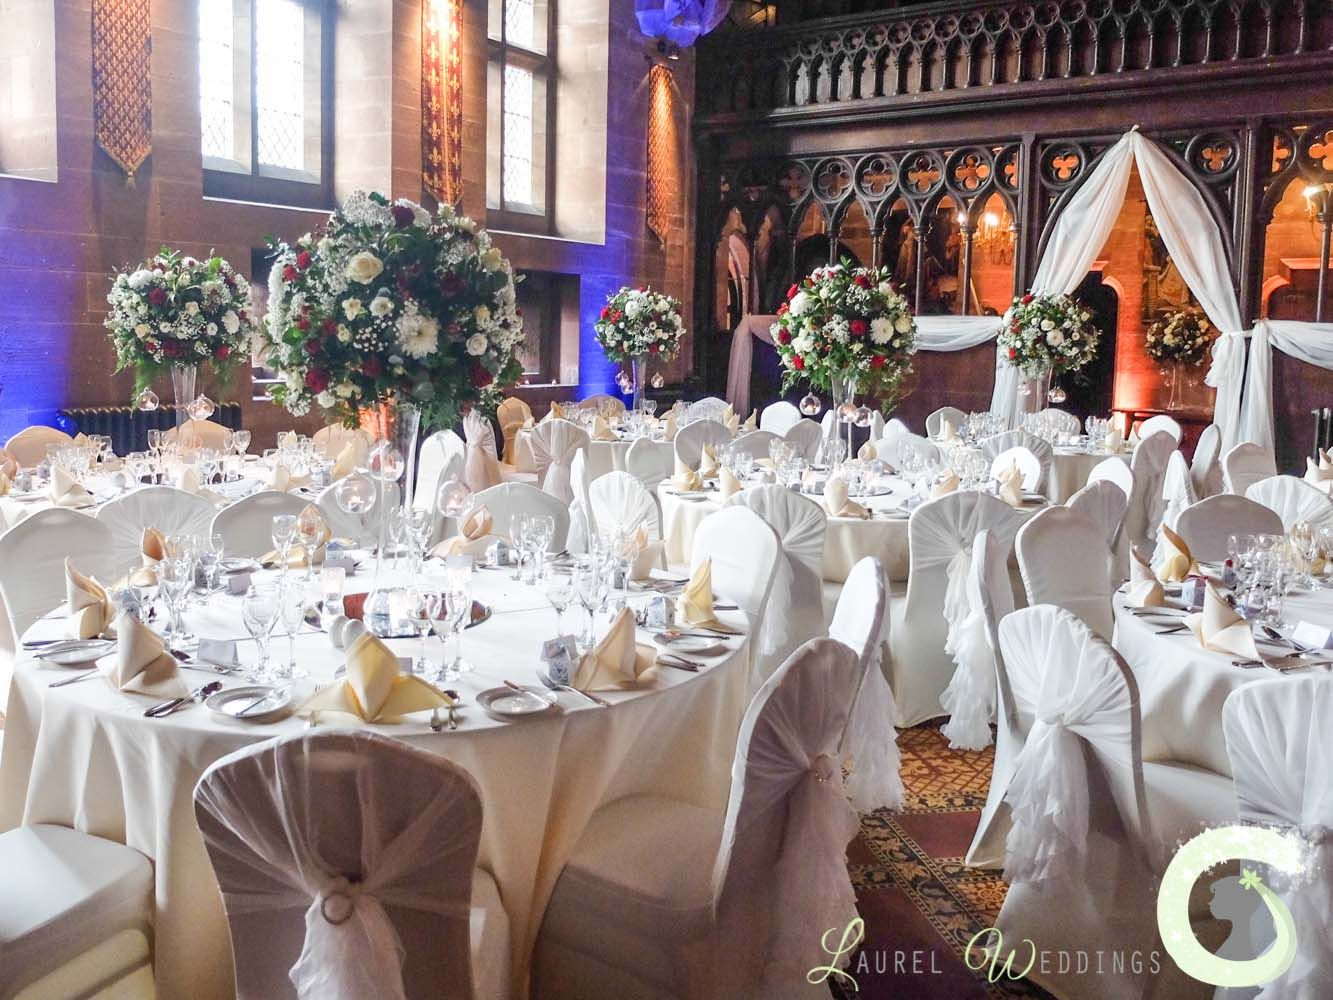 21 best peckforton castle wedding images on pinterest | vase